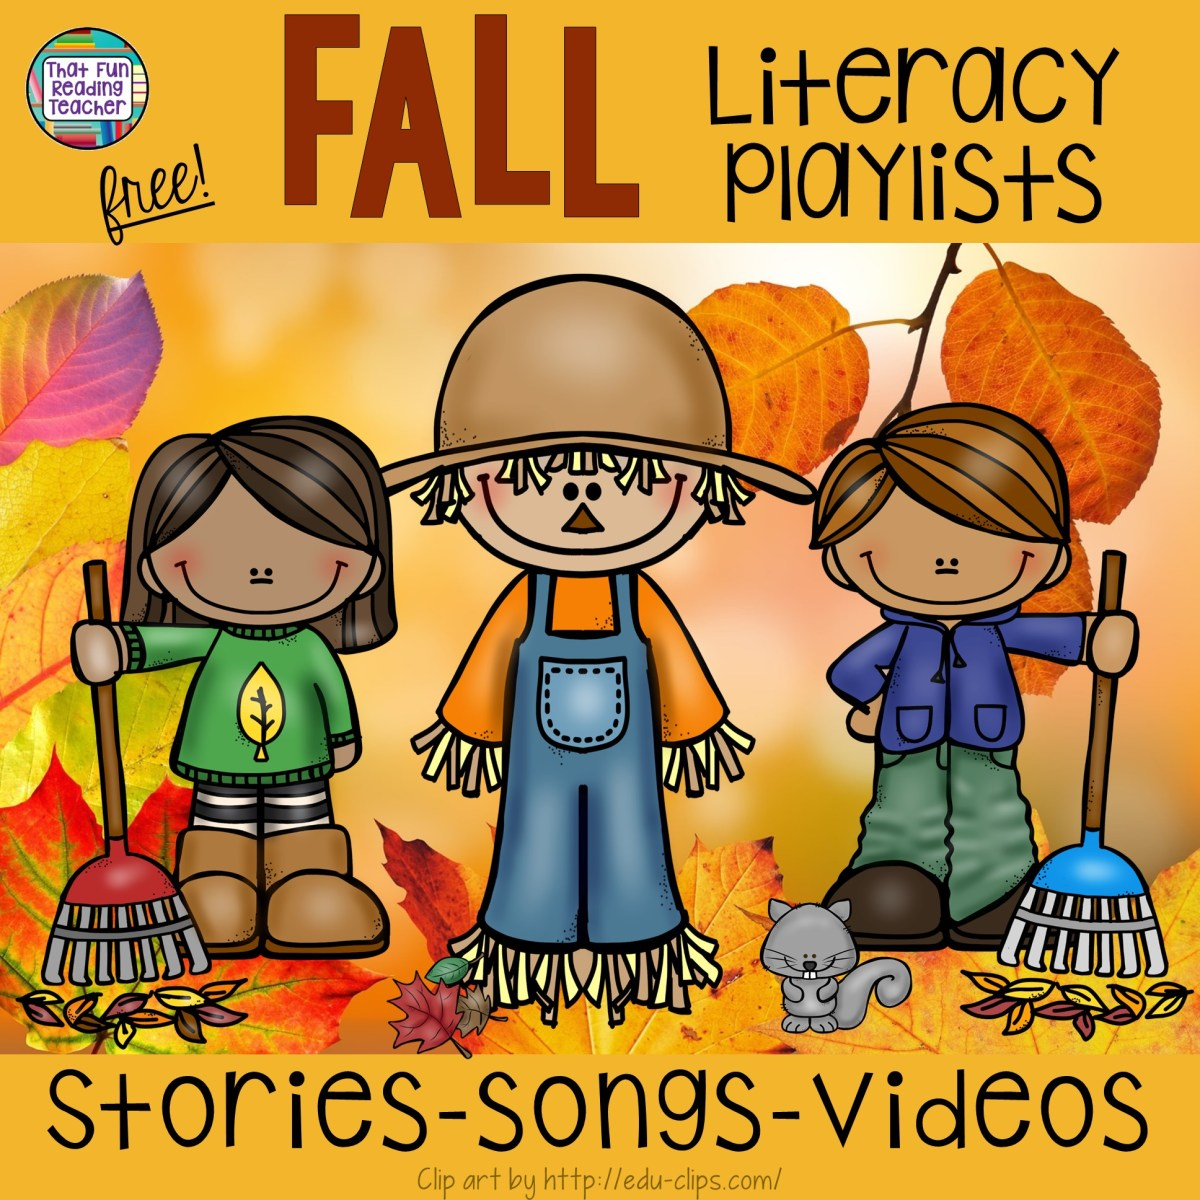 Fall Literacy Playlists - Free!